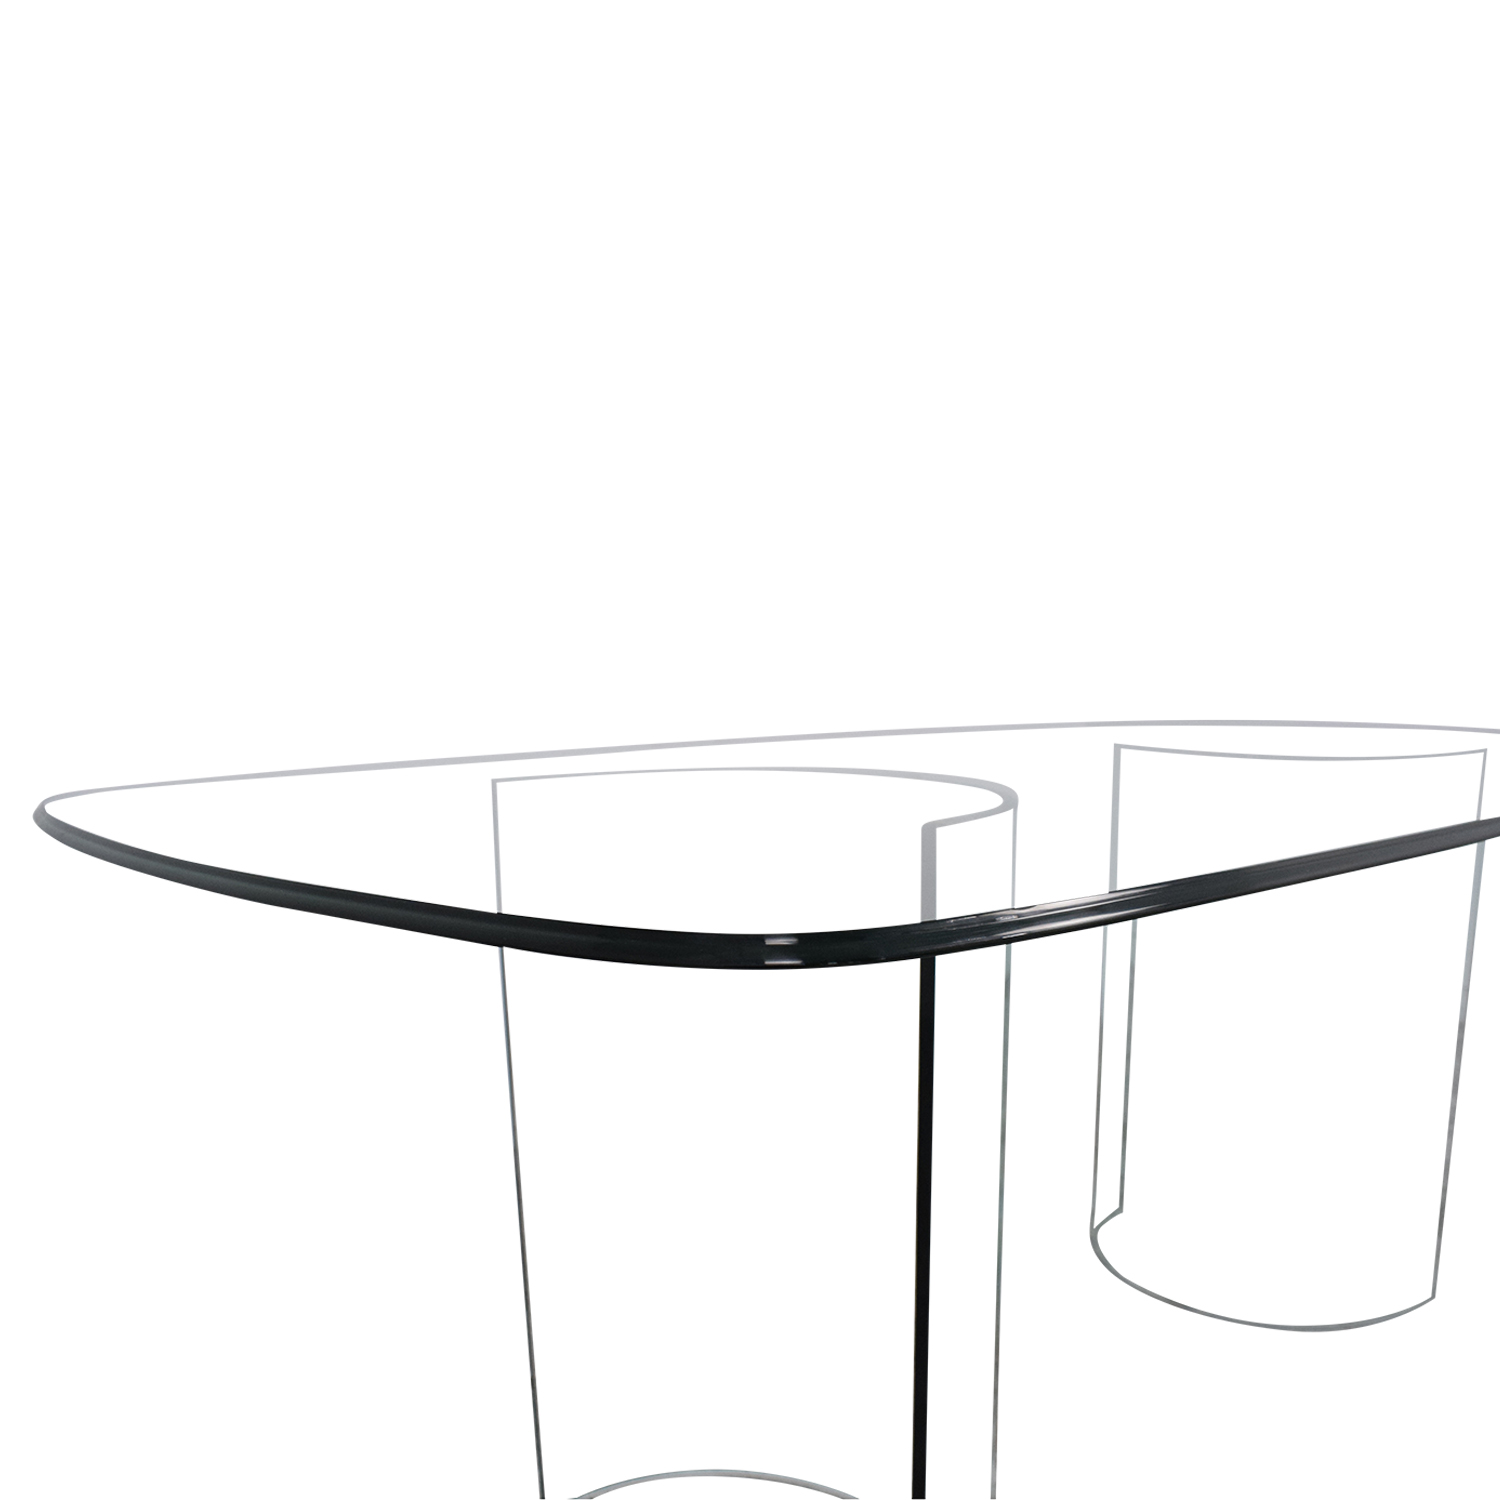 Raymour & Flanigan Raymour & Flanigan Beveled Tempered Glass Dining Table used